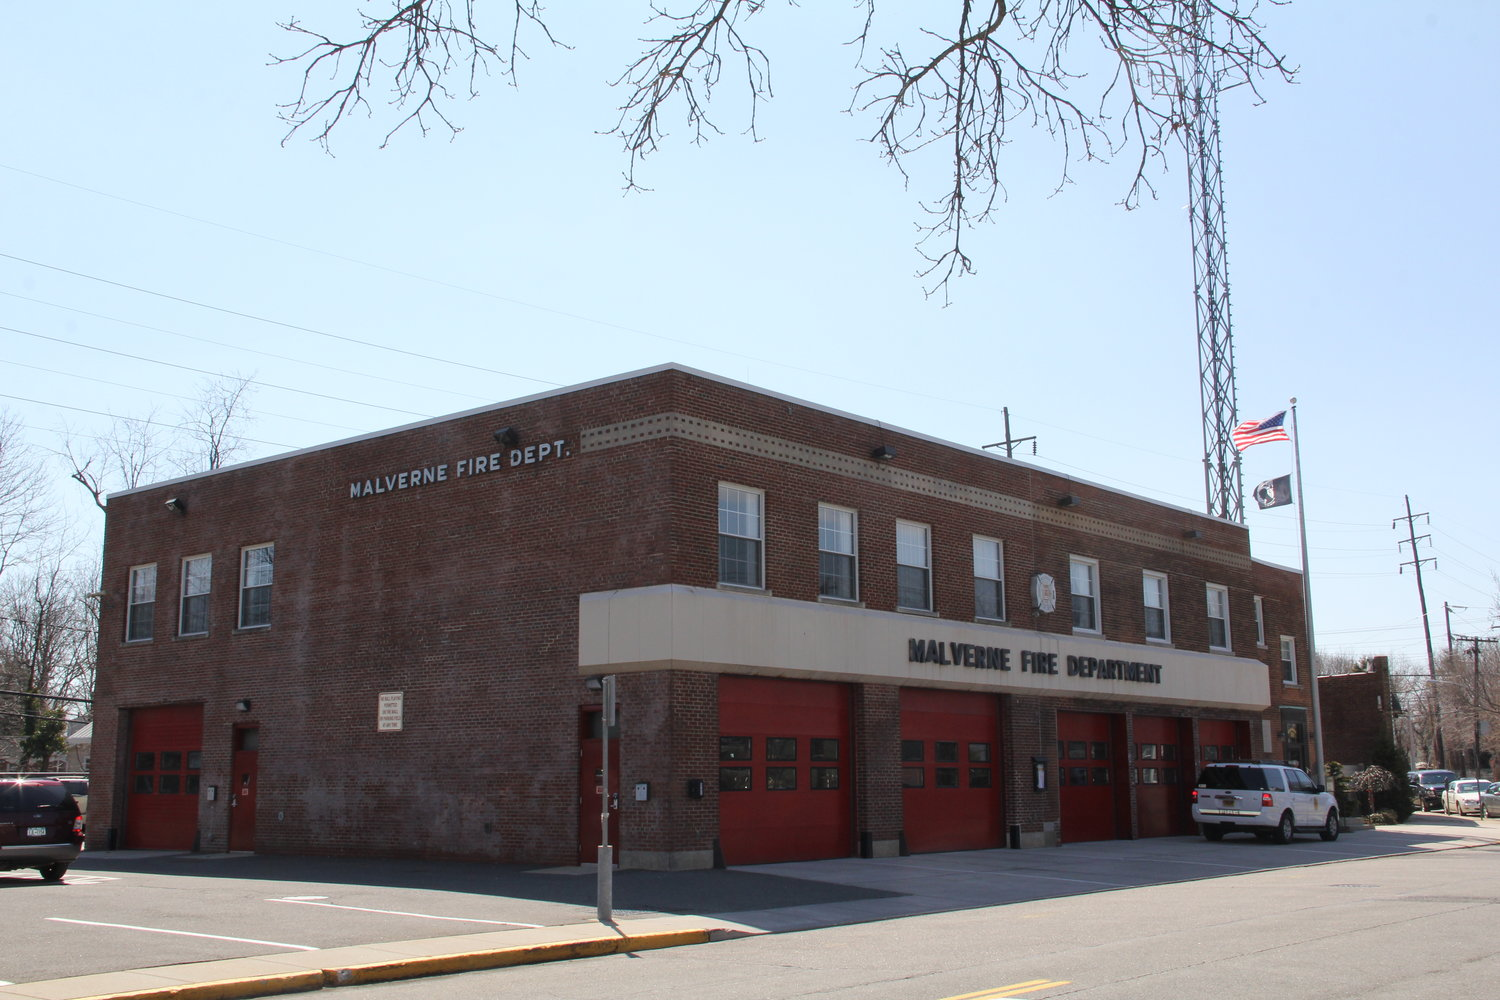 Malverne's village election will be held at the Malverne Firehouse on March 19, from 7 a.m. to 9 p.m.